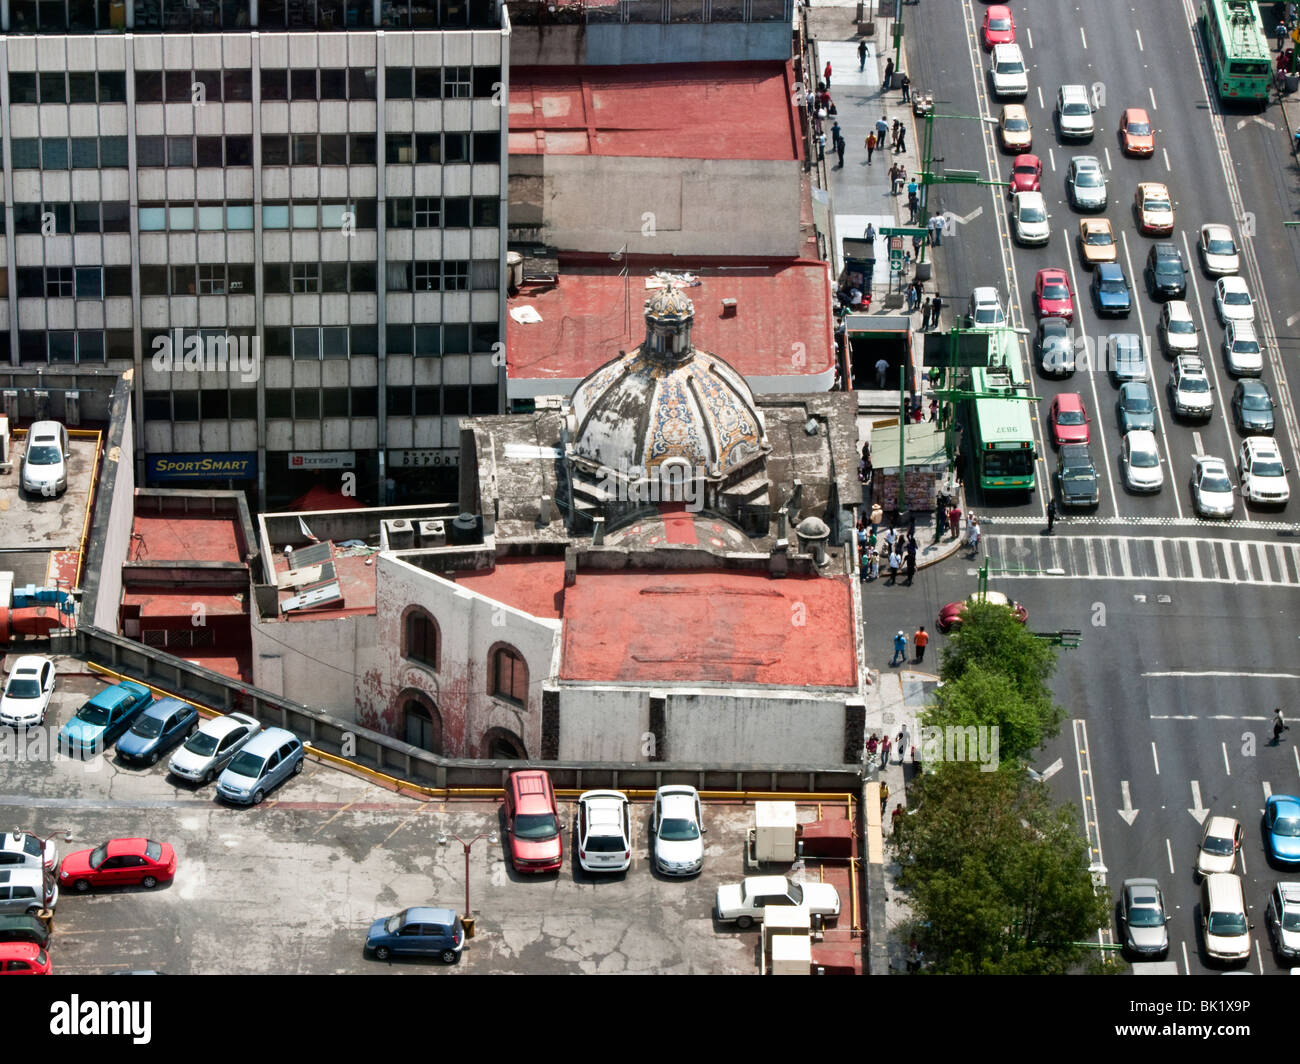 view looking down on traffic & electric buses on Avenida Laslo Cardenas & small old church sandwiched between large Stock Photo